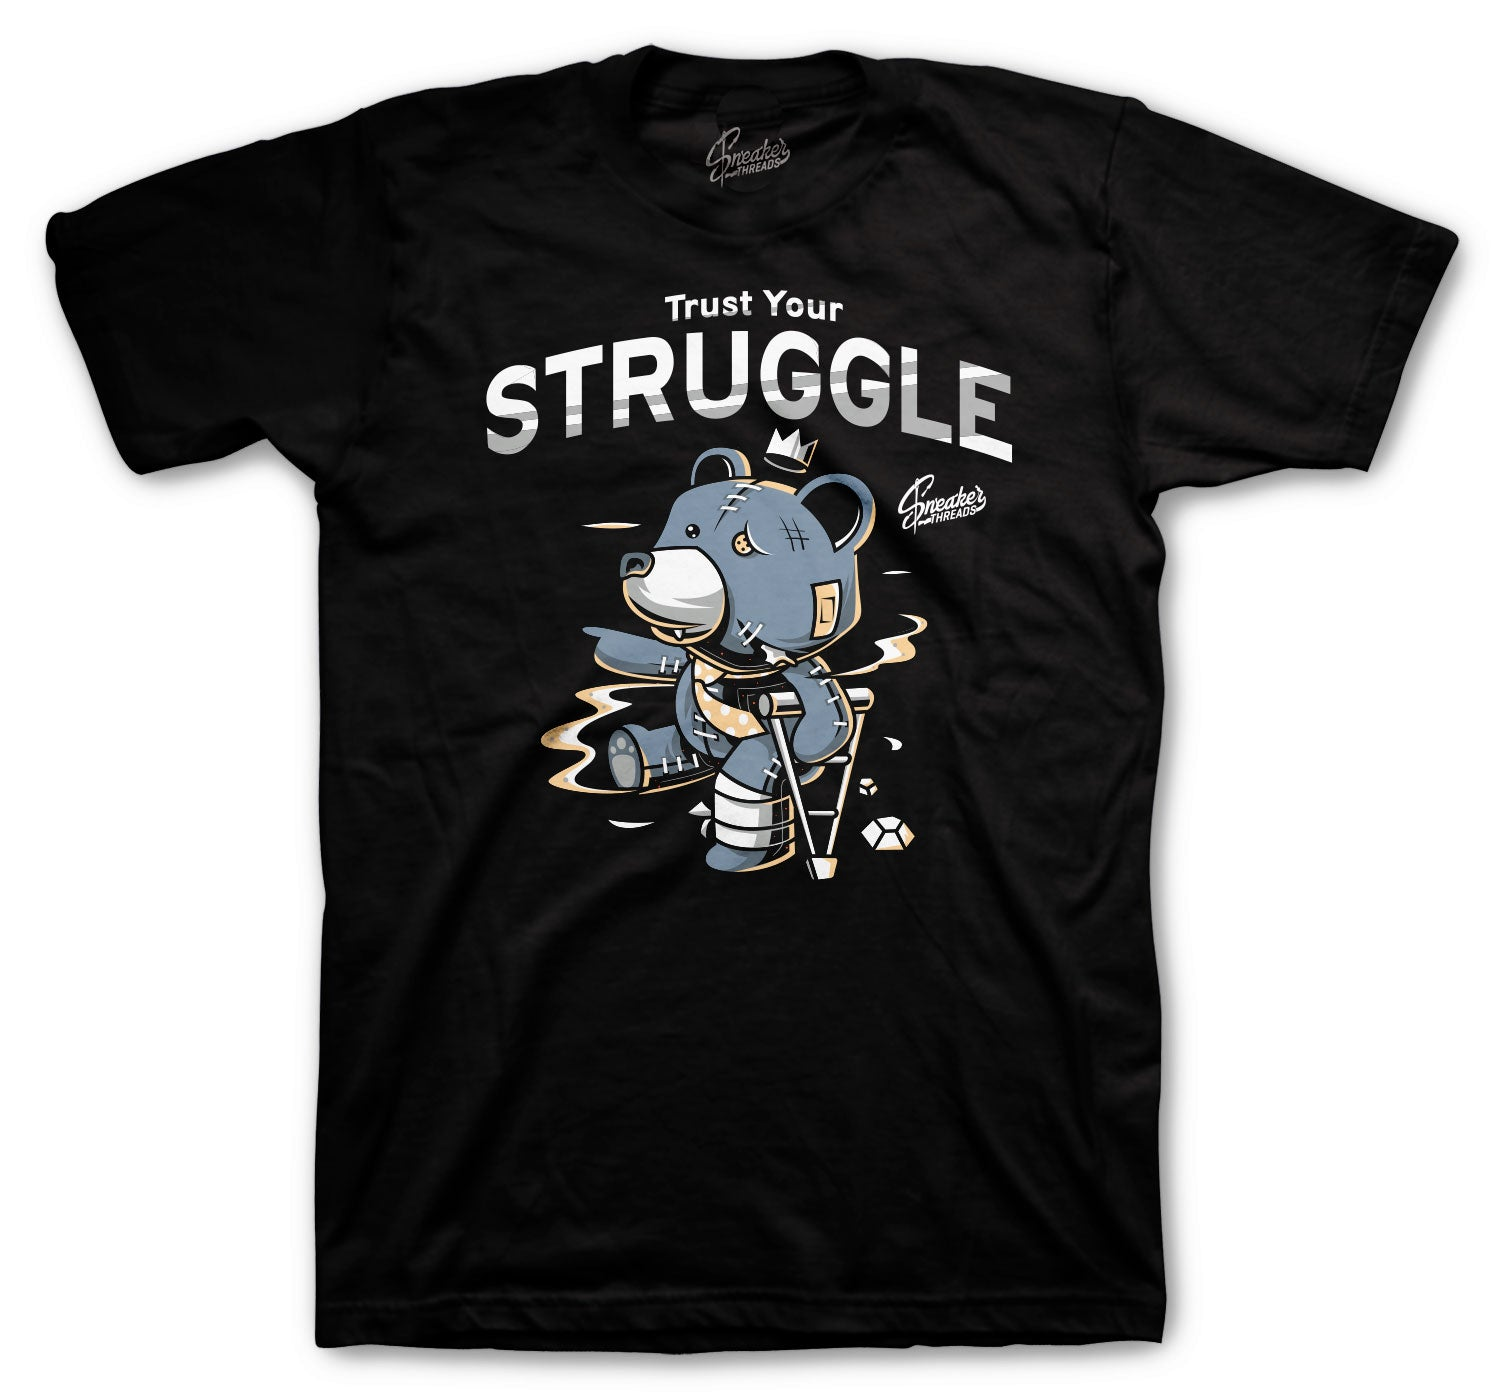 Yeezy Ash Blue 350 Shirt - Trust Your Struggle - Black